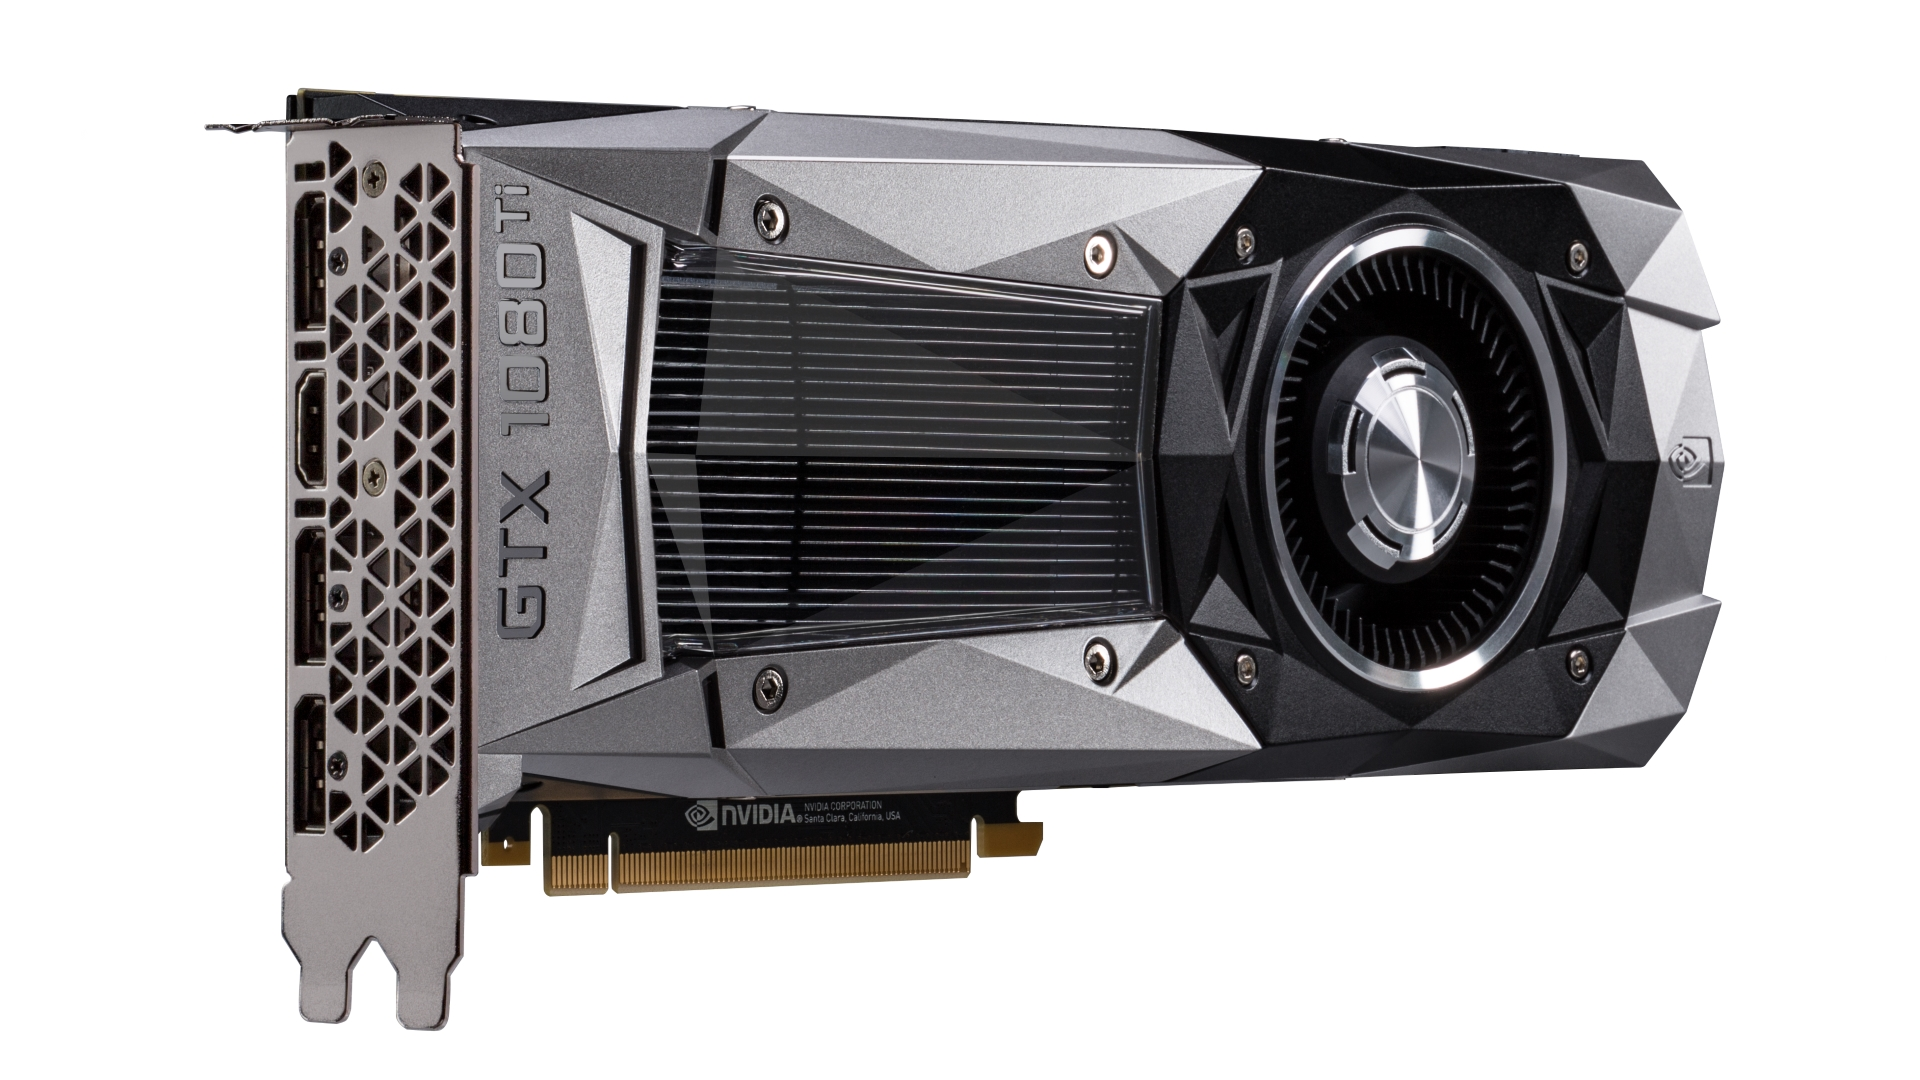 Nvidia GTX 1080 Ti review: the numbers are in  Hail to the